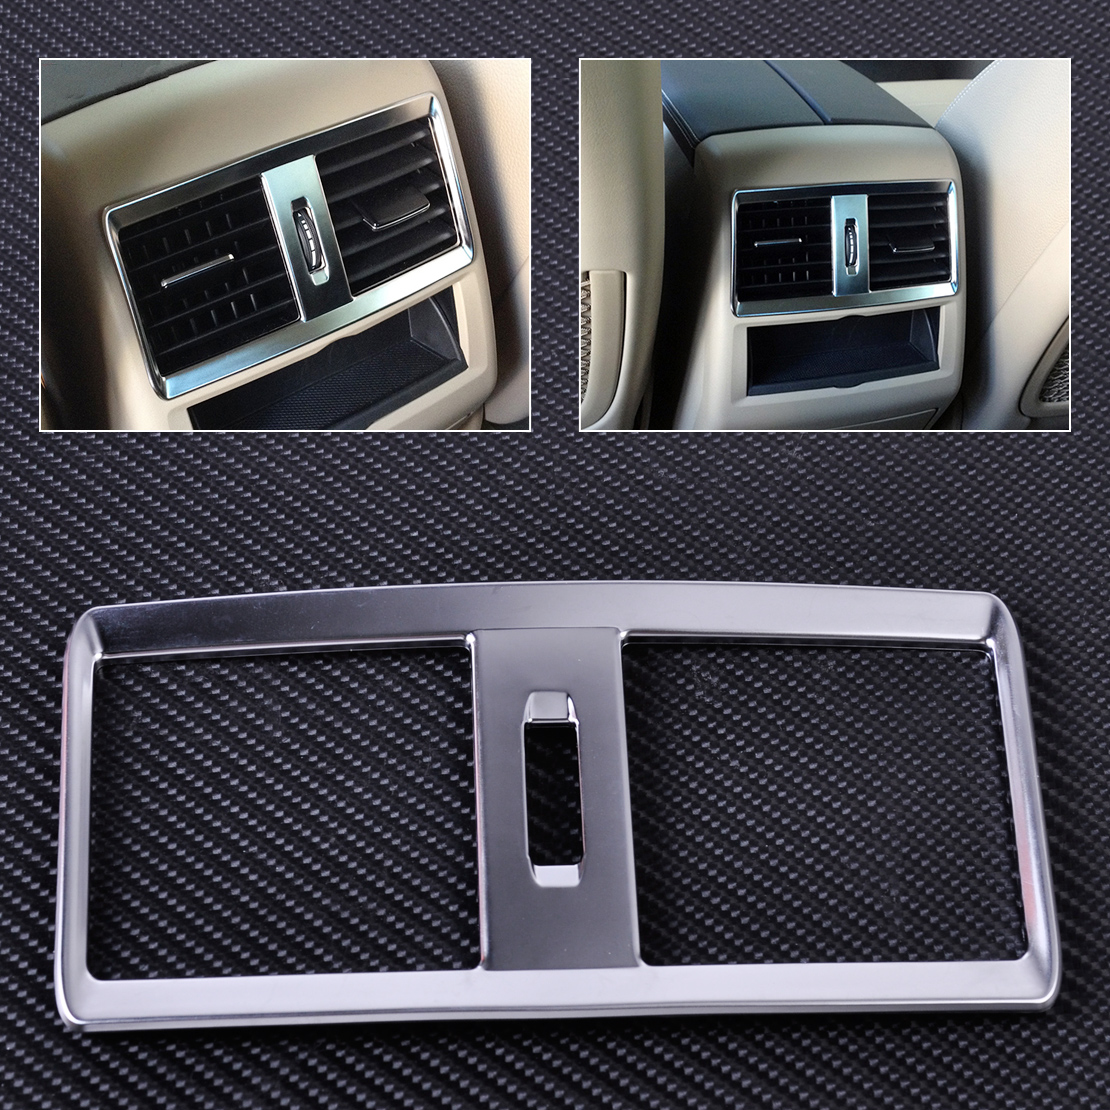 CITALL Interior Rear Armrest Air Condition Vent Outlet Cover Trim Frame for Mercedes Benz ML W166 GL X166 2013 2014 2015 2016 rear shock struts 2 air spring bag kit for mercedes ml